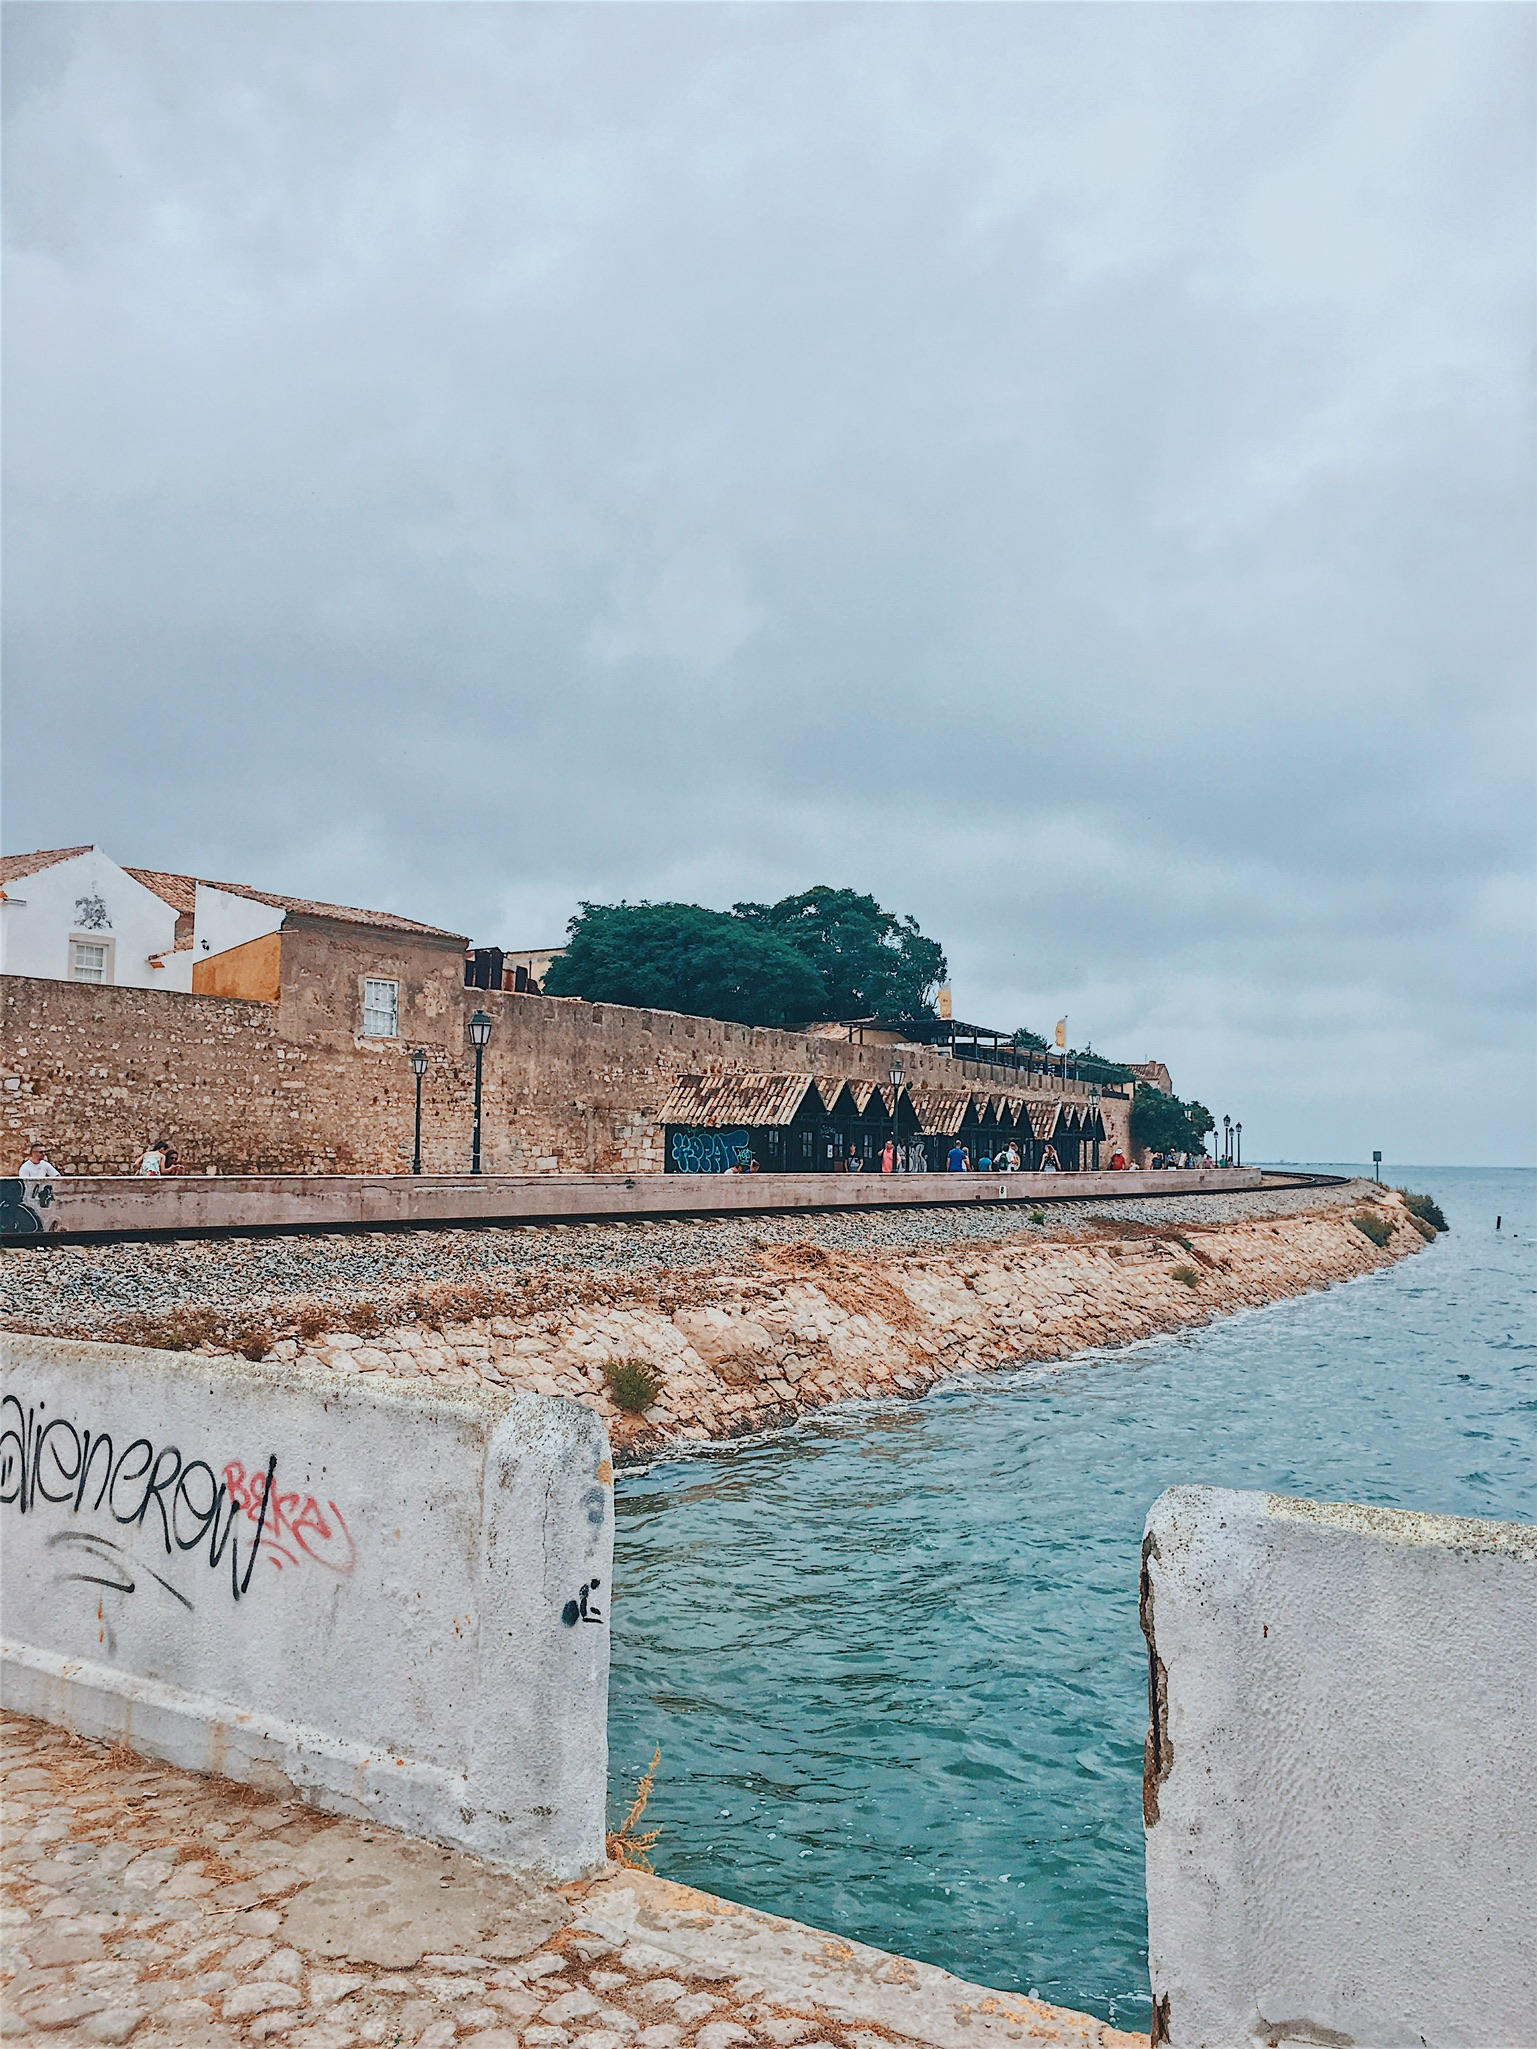 Walking from the main Faro port to the ferry dock